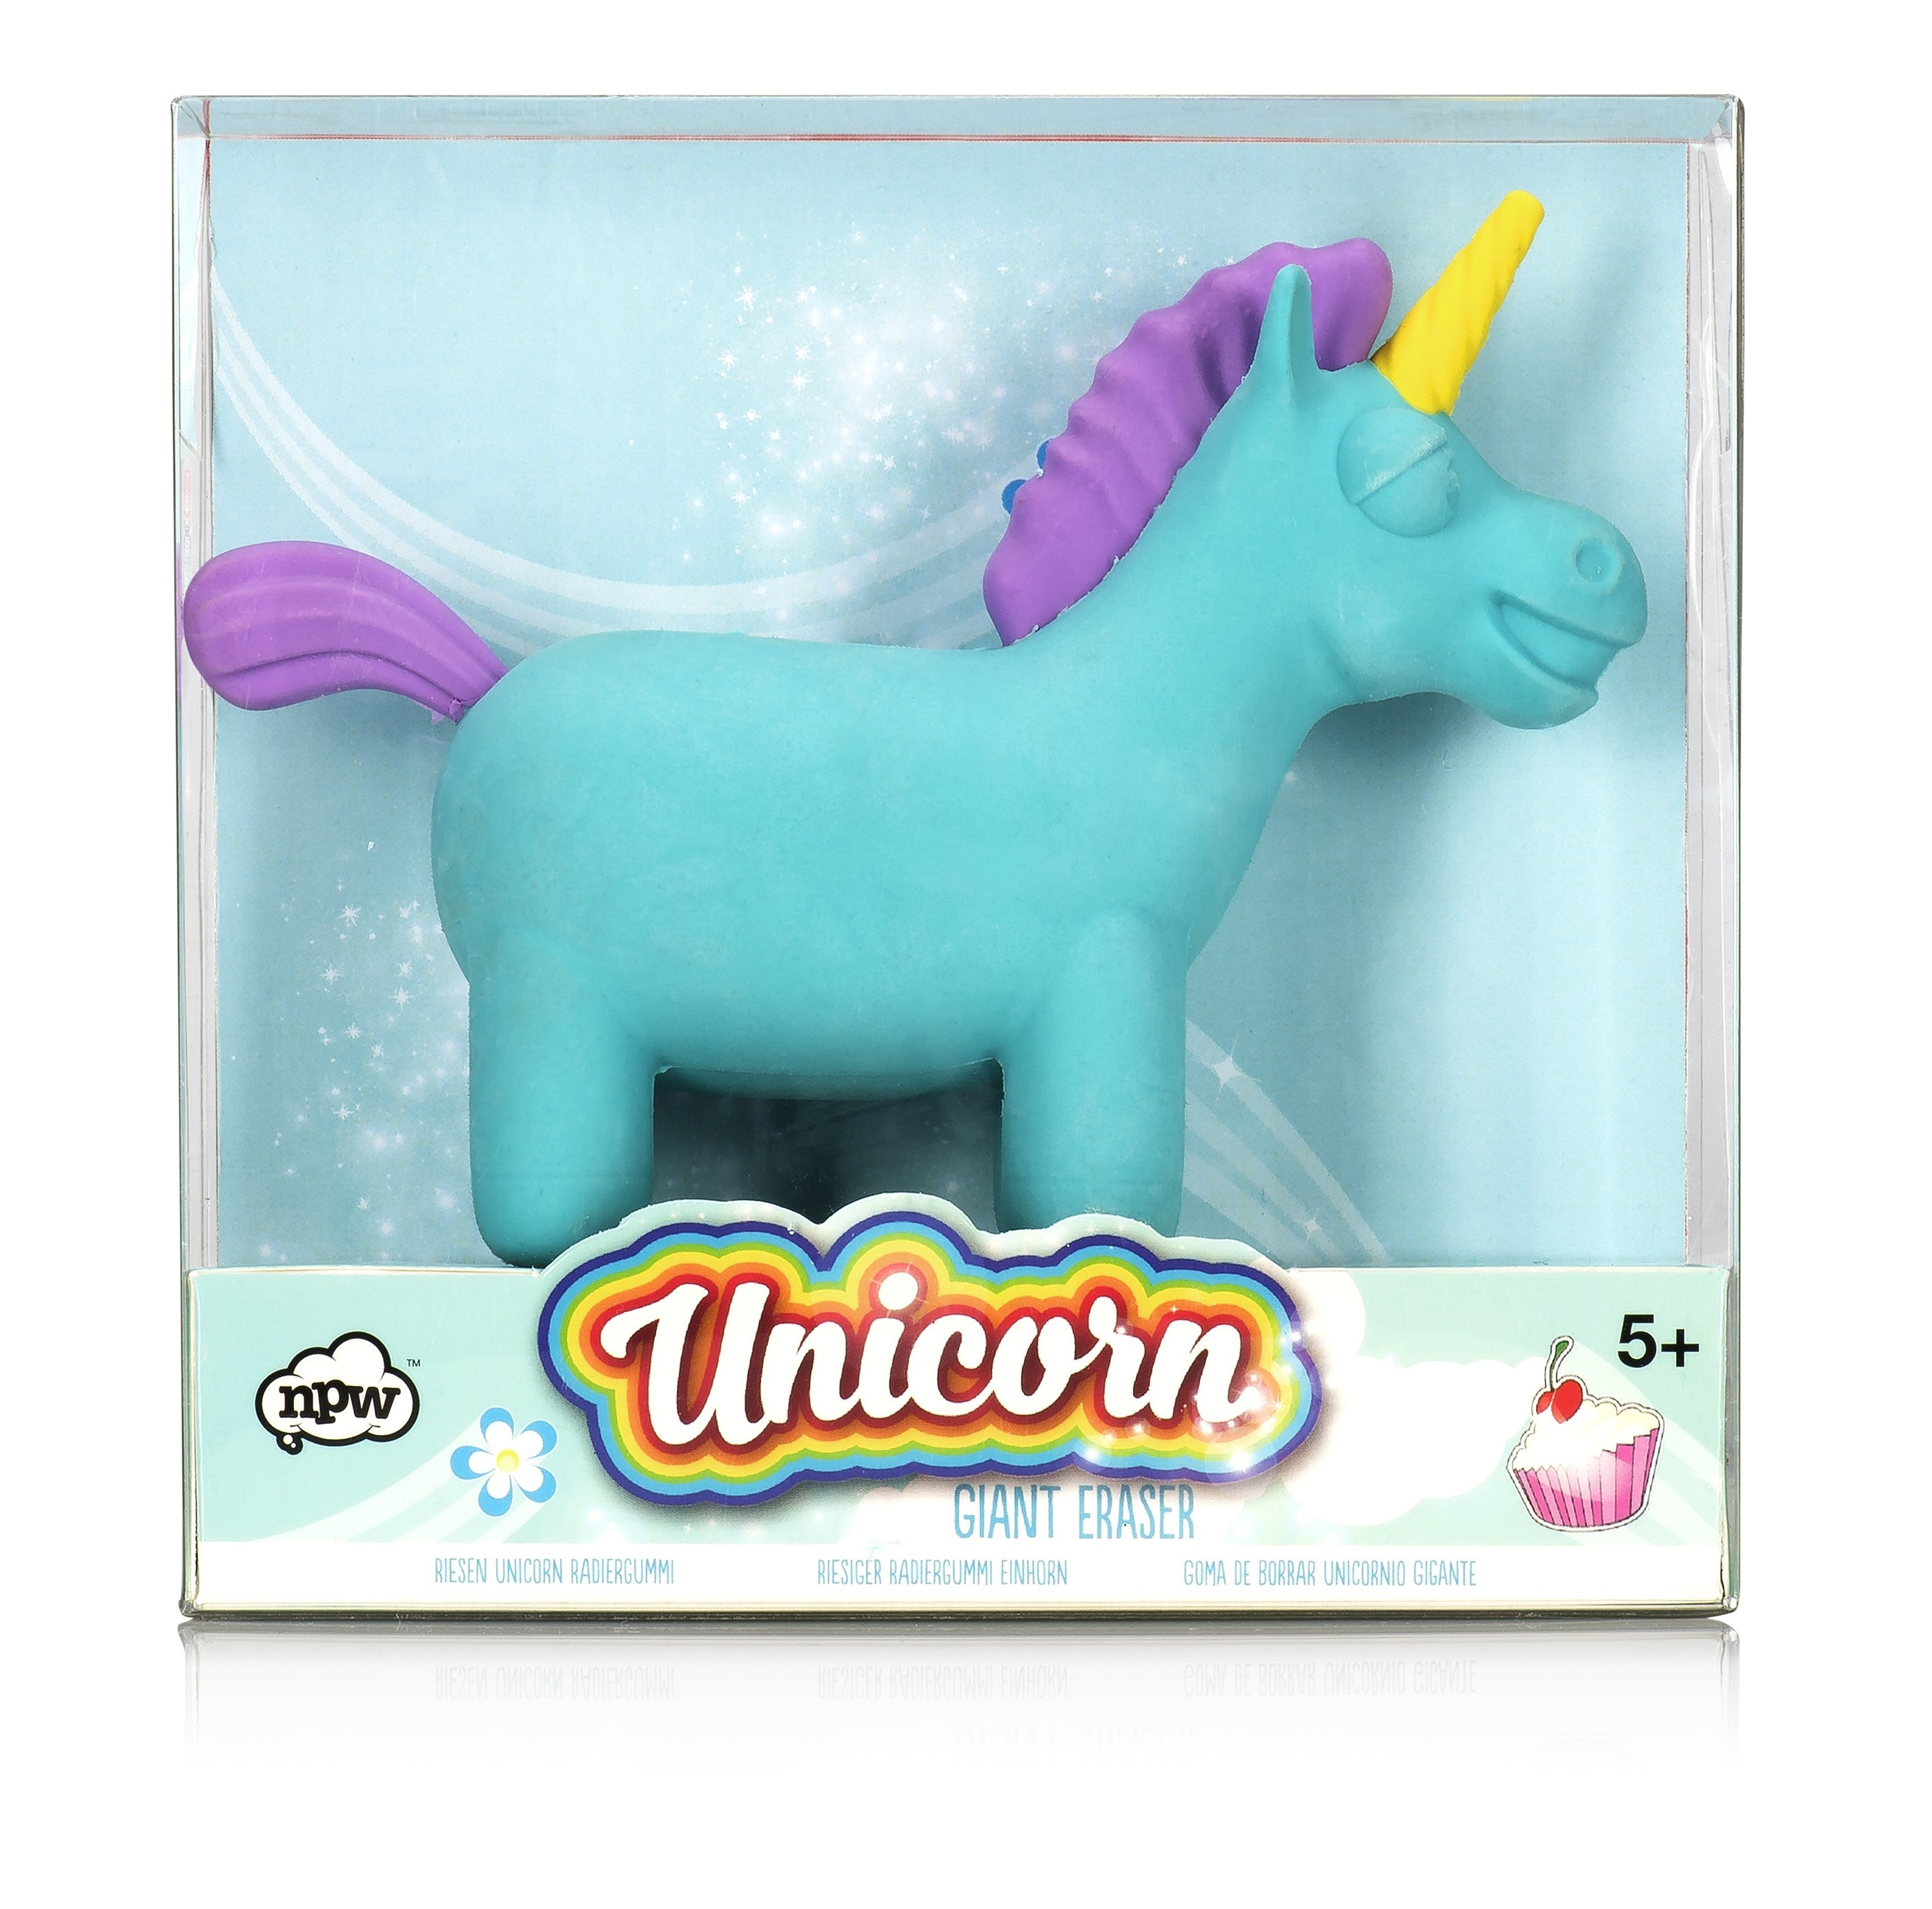 NPW | Unicorn Giant Eraser